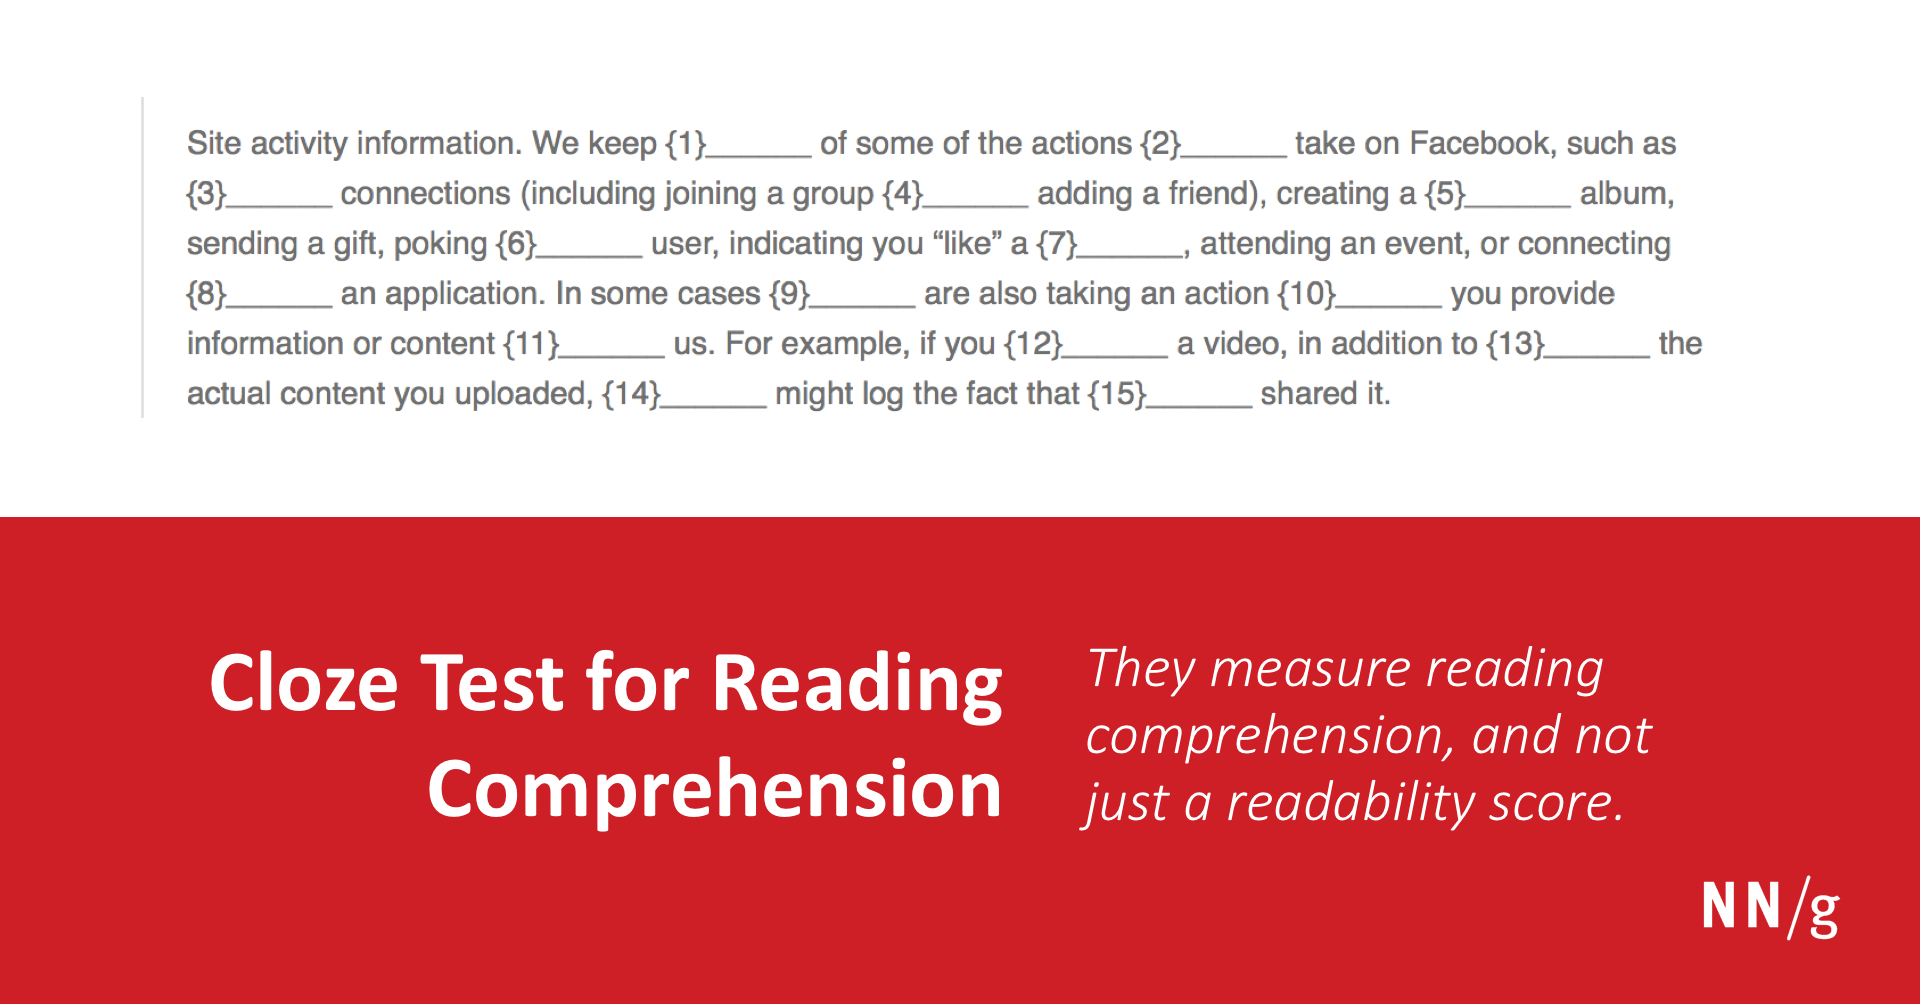 Cloze Test for Reading Comprehension